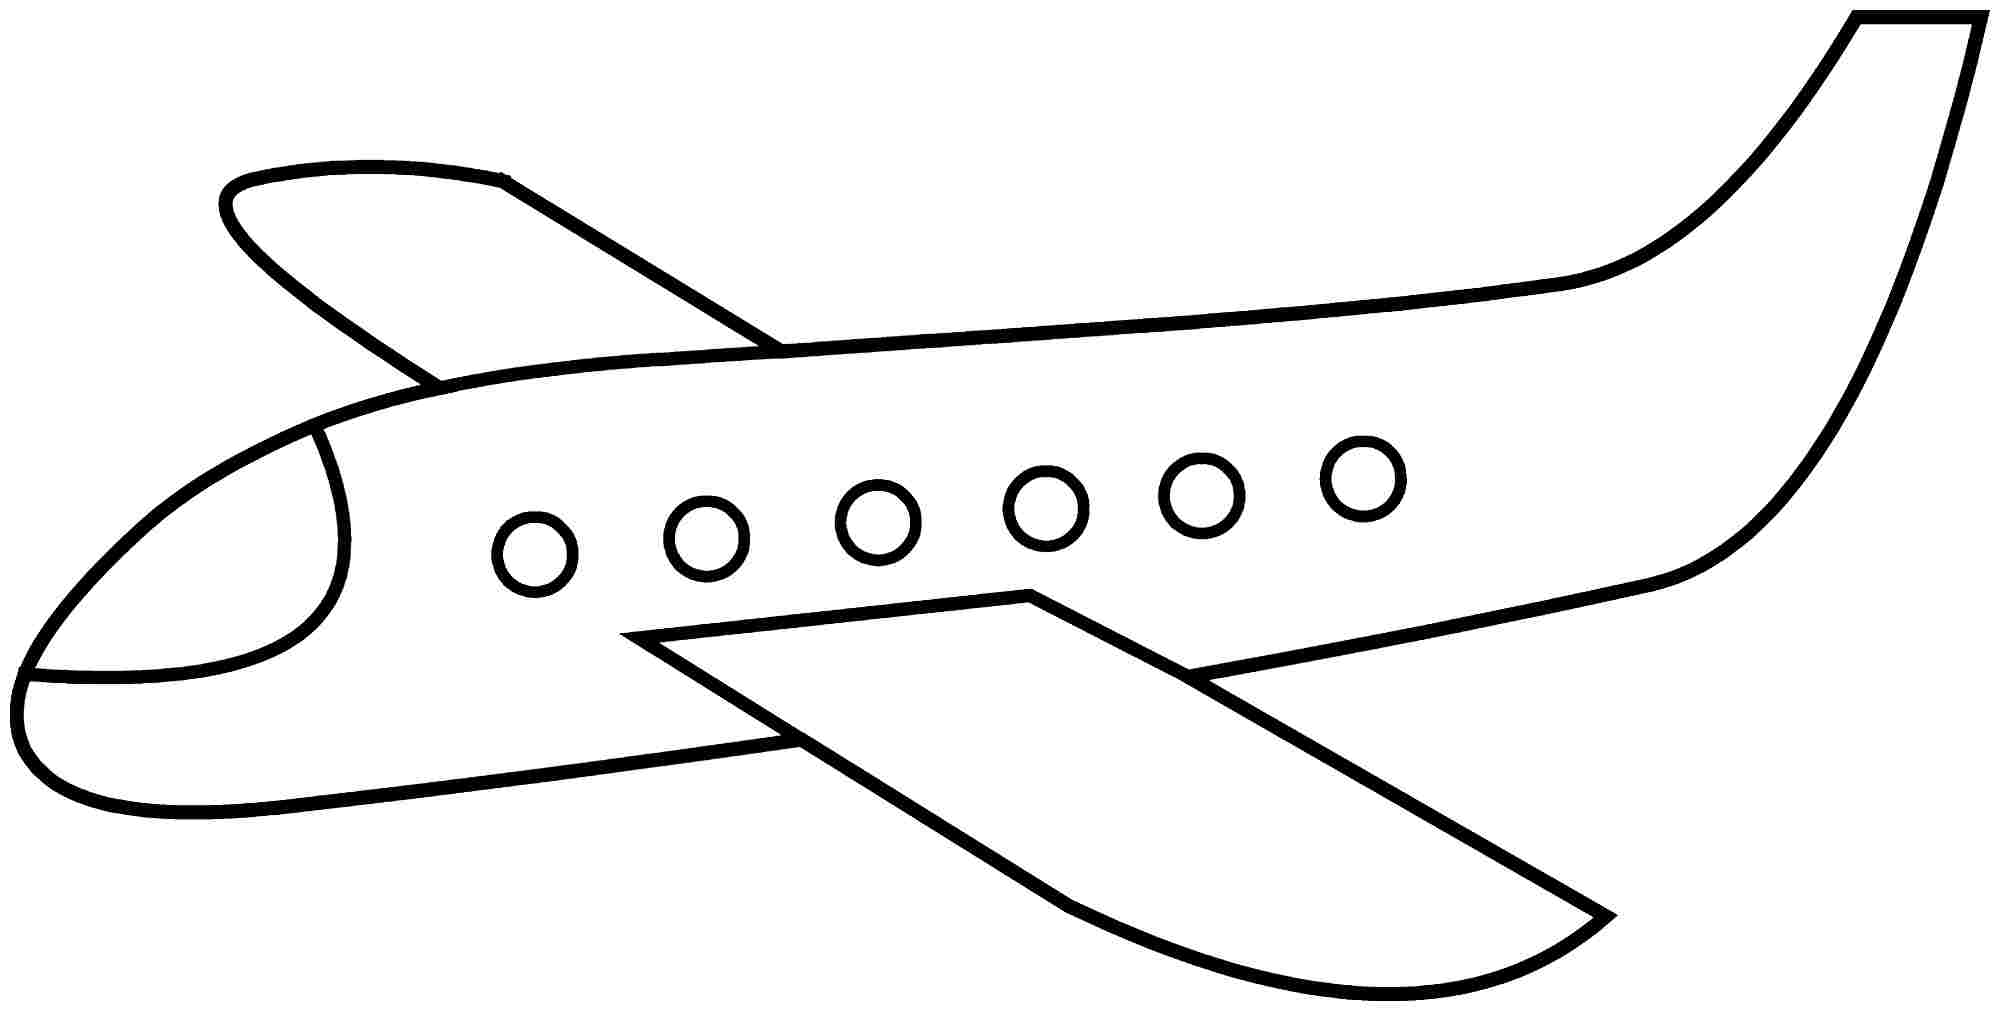 Plane Coloring Pages - Plane Coloring Pages 9267